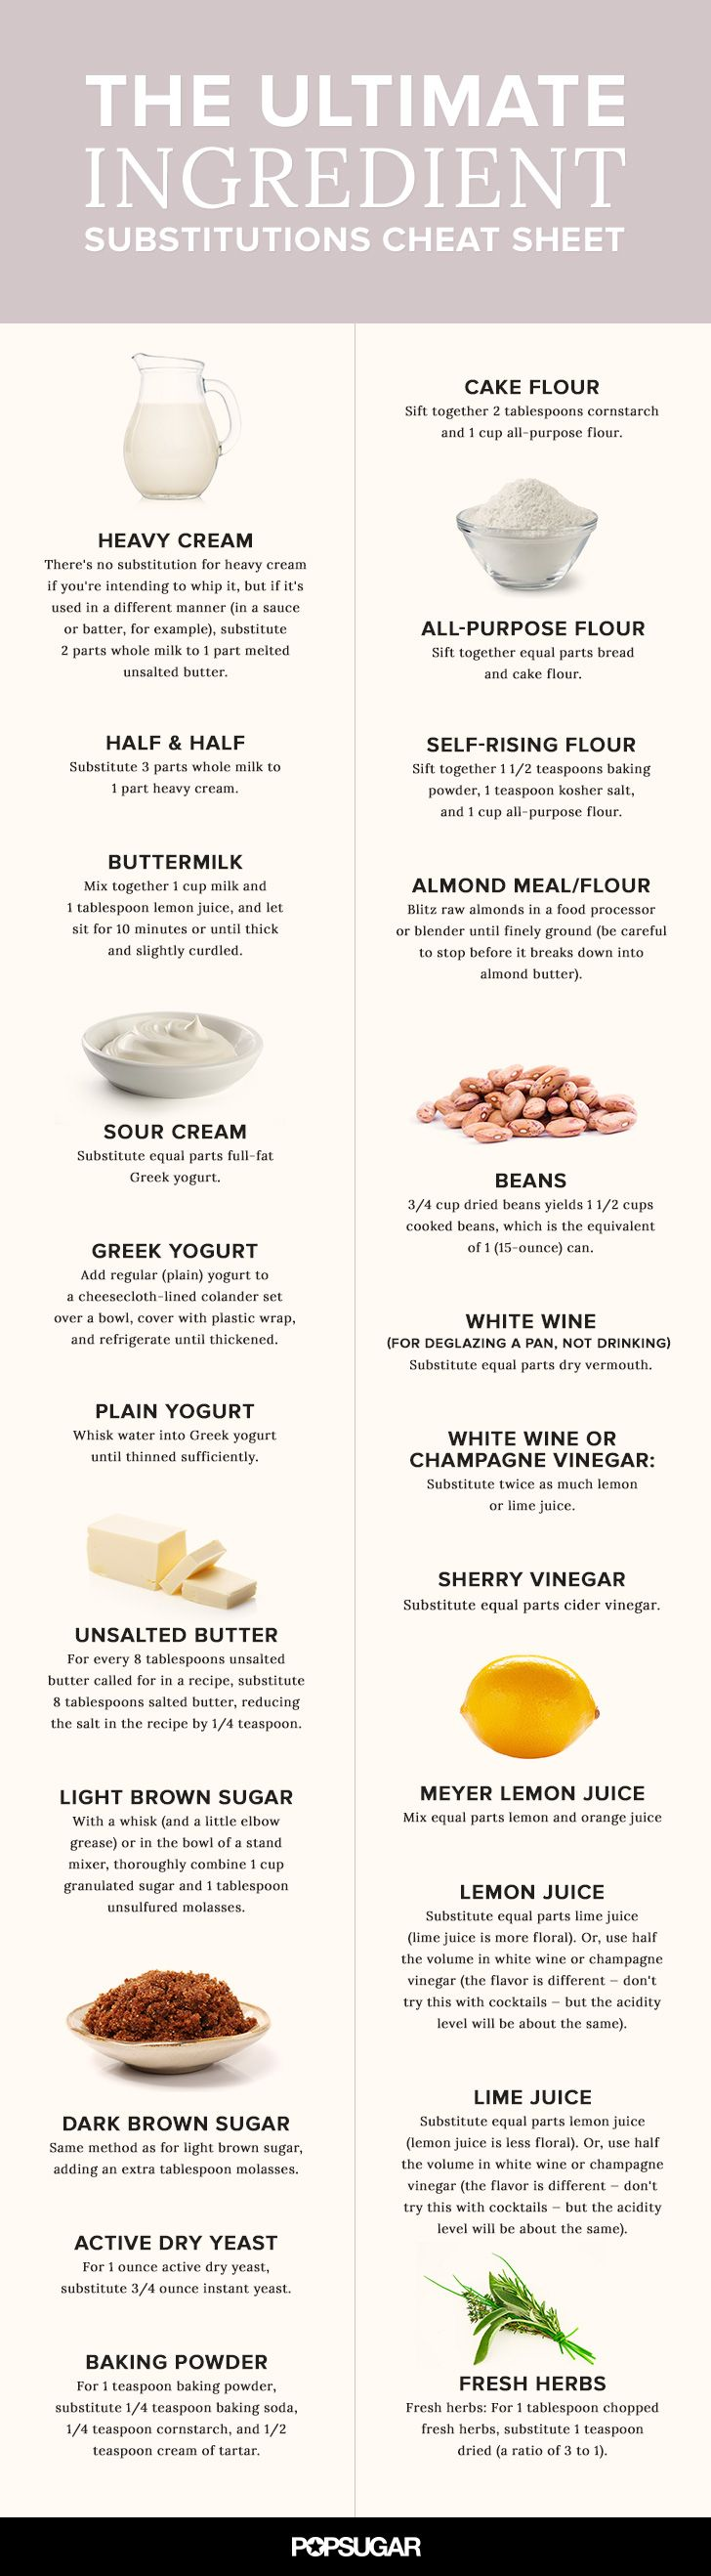 Common Ingredient Substitutions Guide